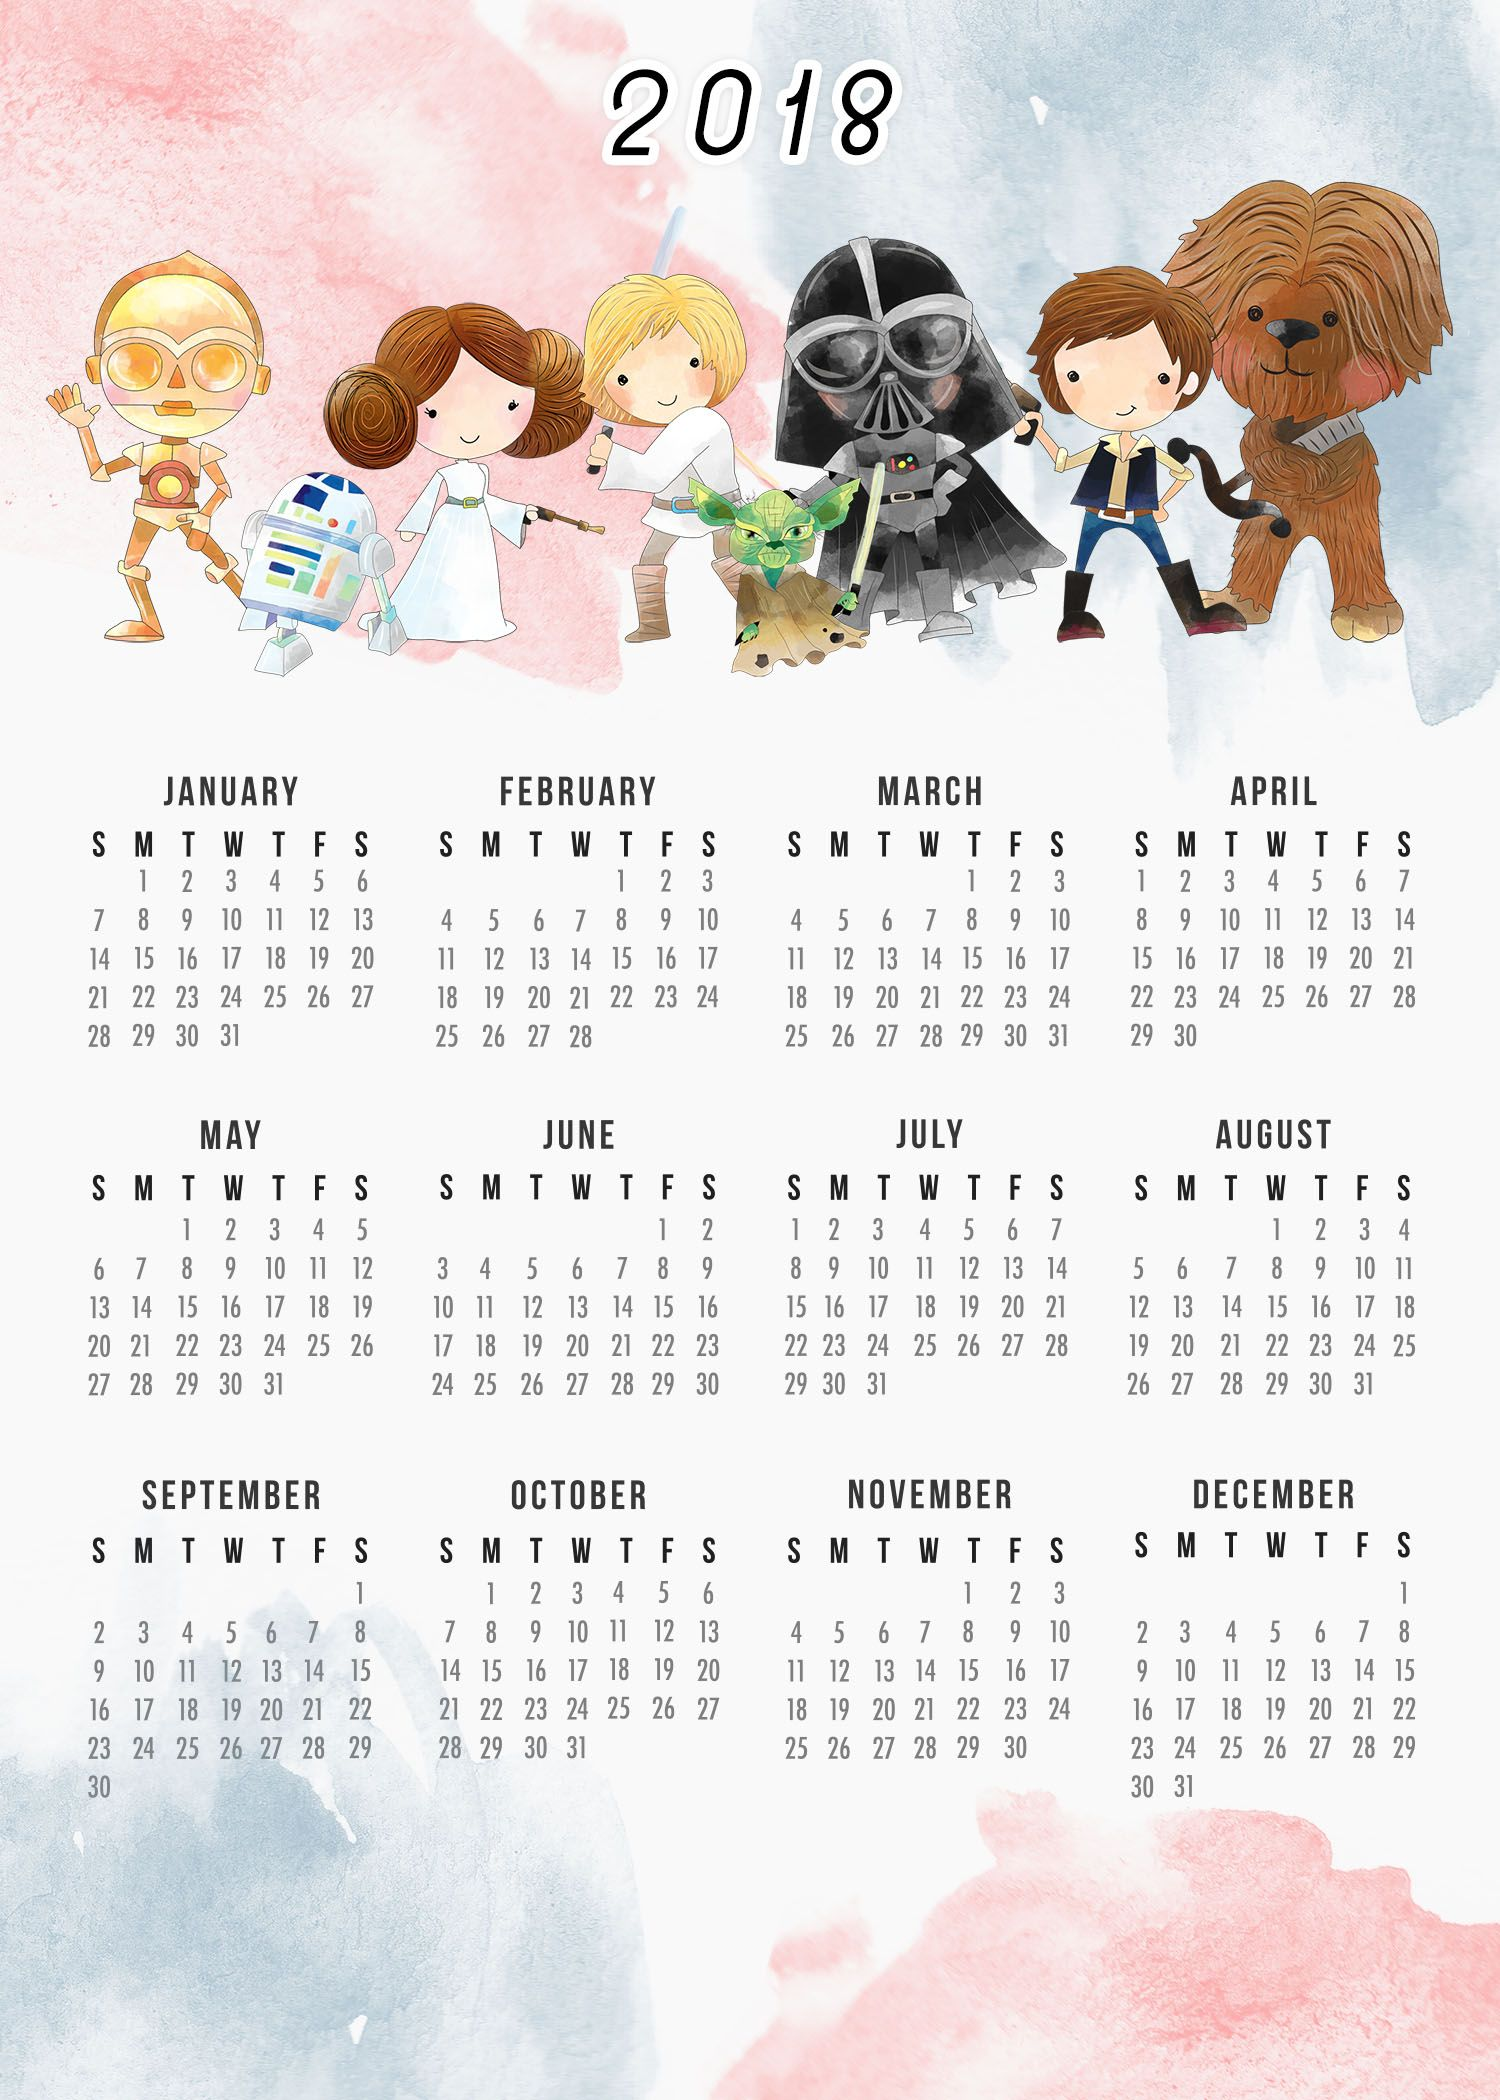 Free Printable 2018 Star Wars Calendar The Cottage Market